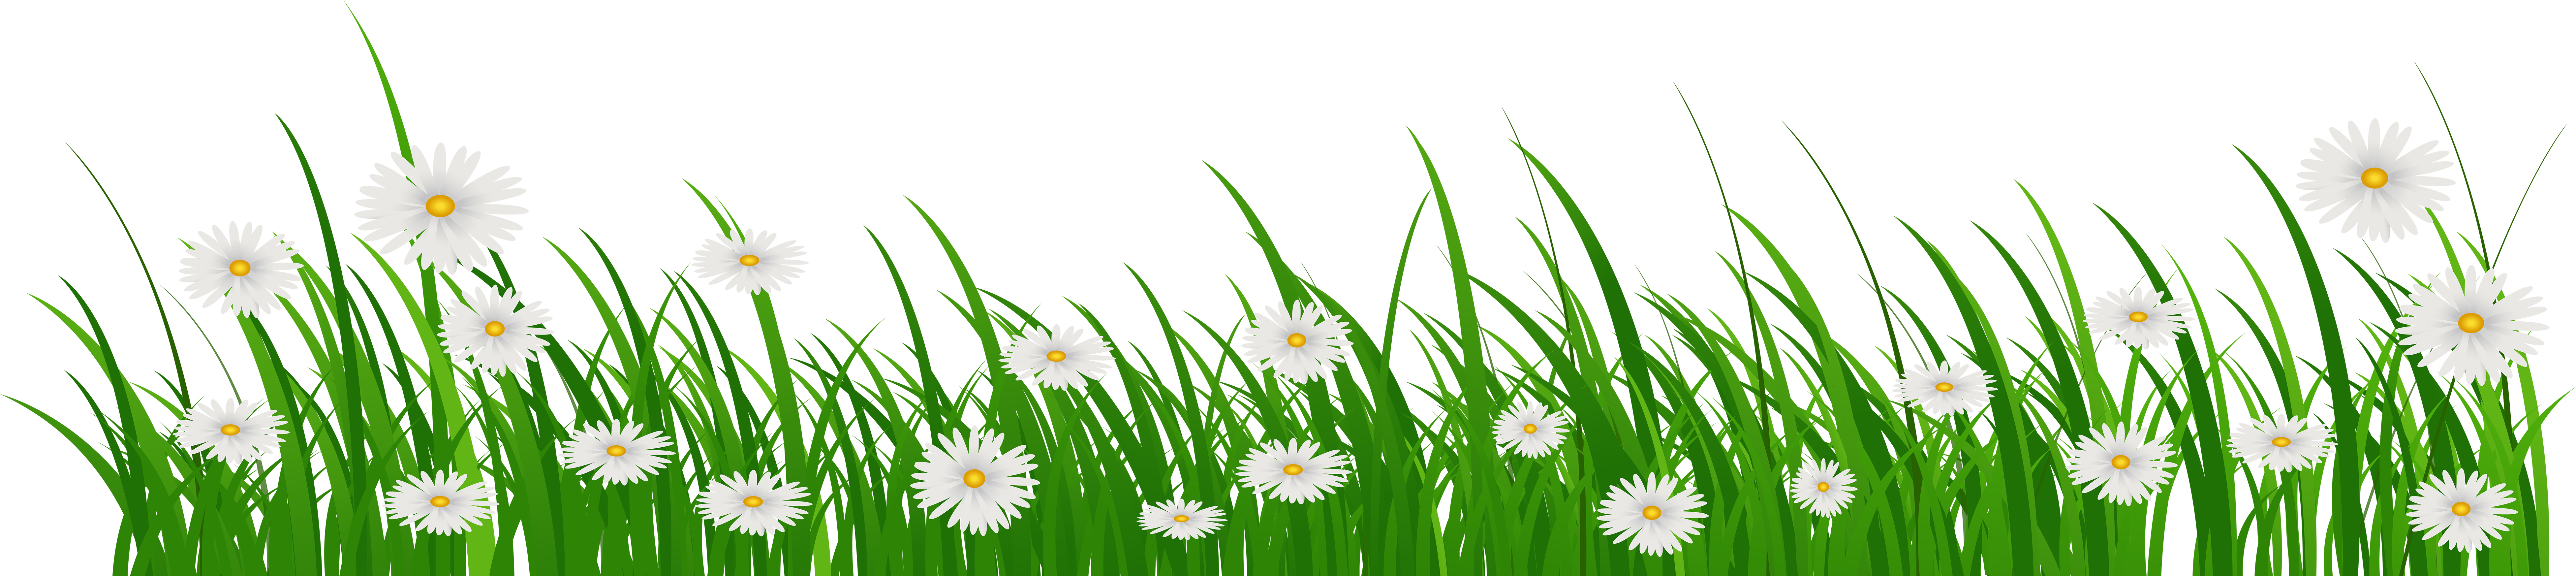 Download Hd Grass With Flowers Png Clip Art Image Grama Com Flor